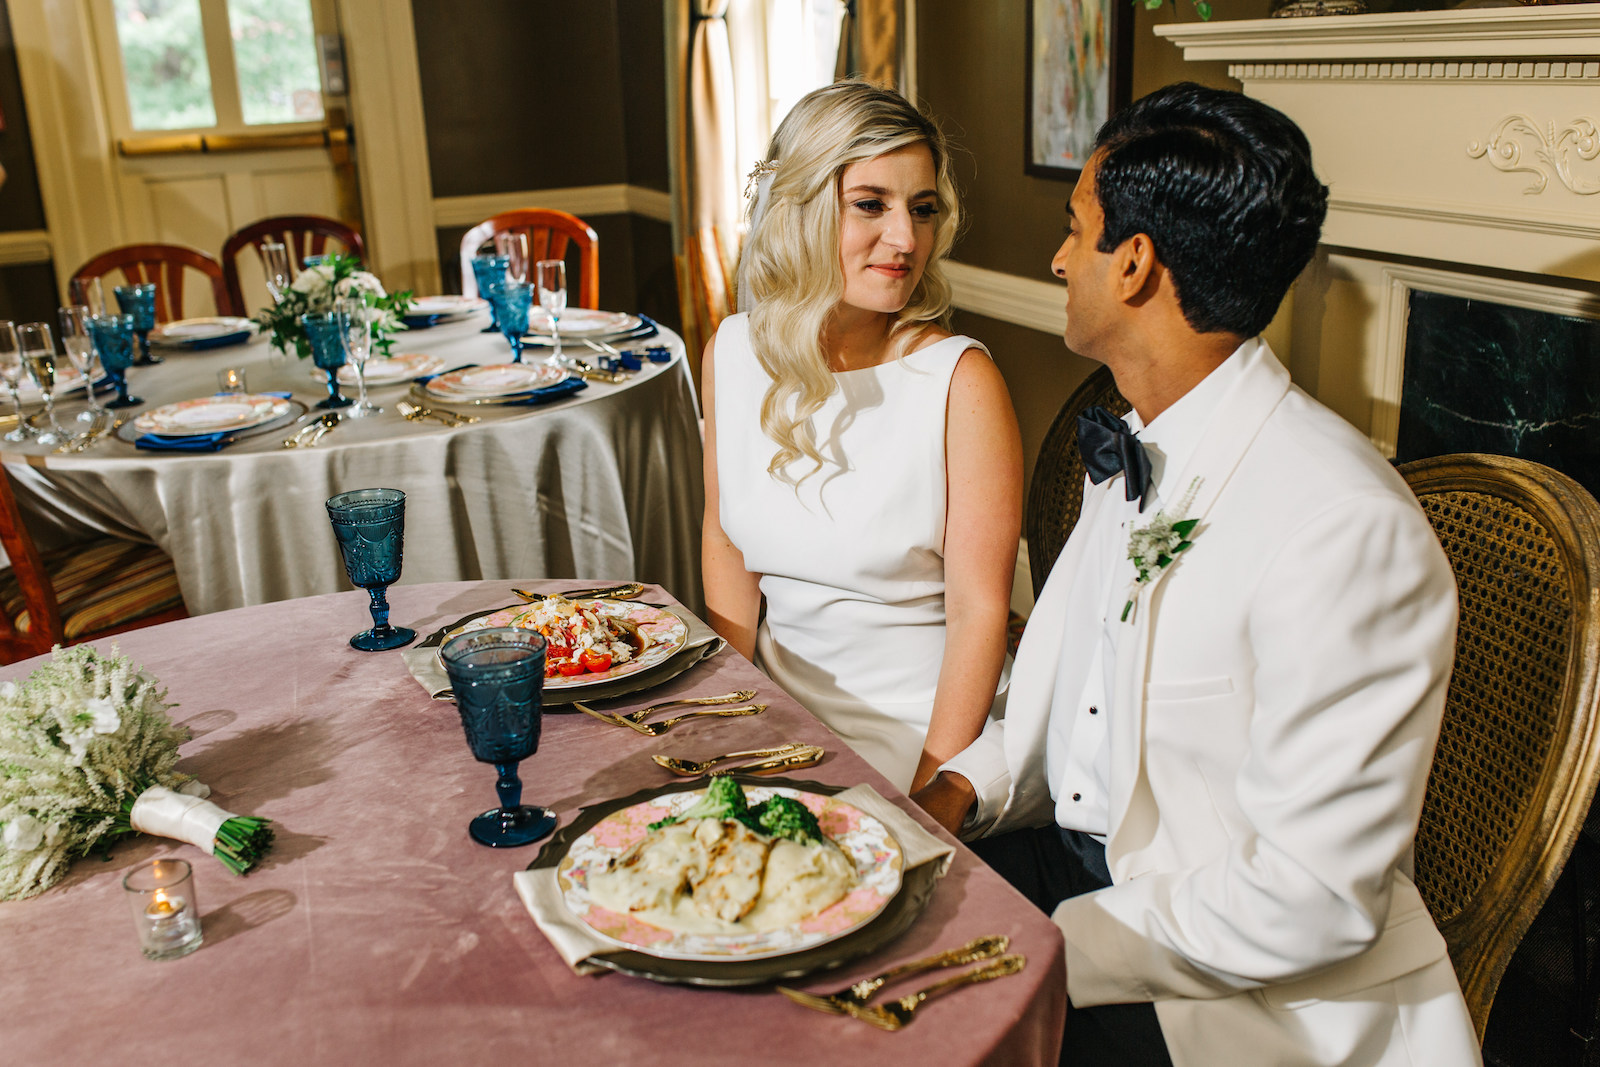 Top Dishes for a Rehearsal Dinner or Bridal Shower at Mere Bulles featured on Nashville Bride Guide